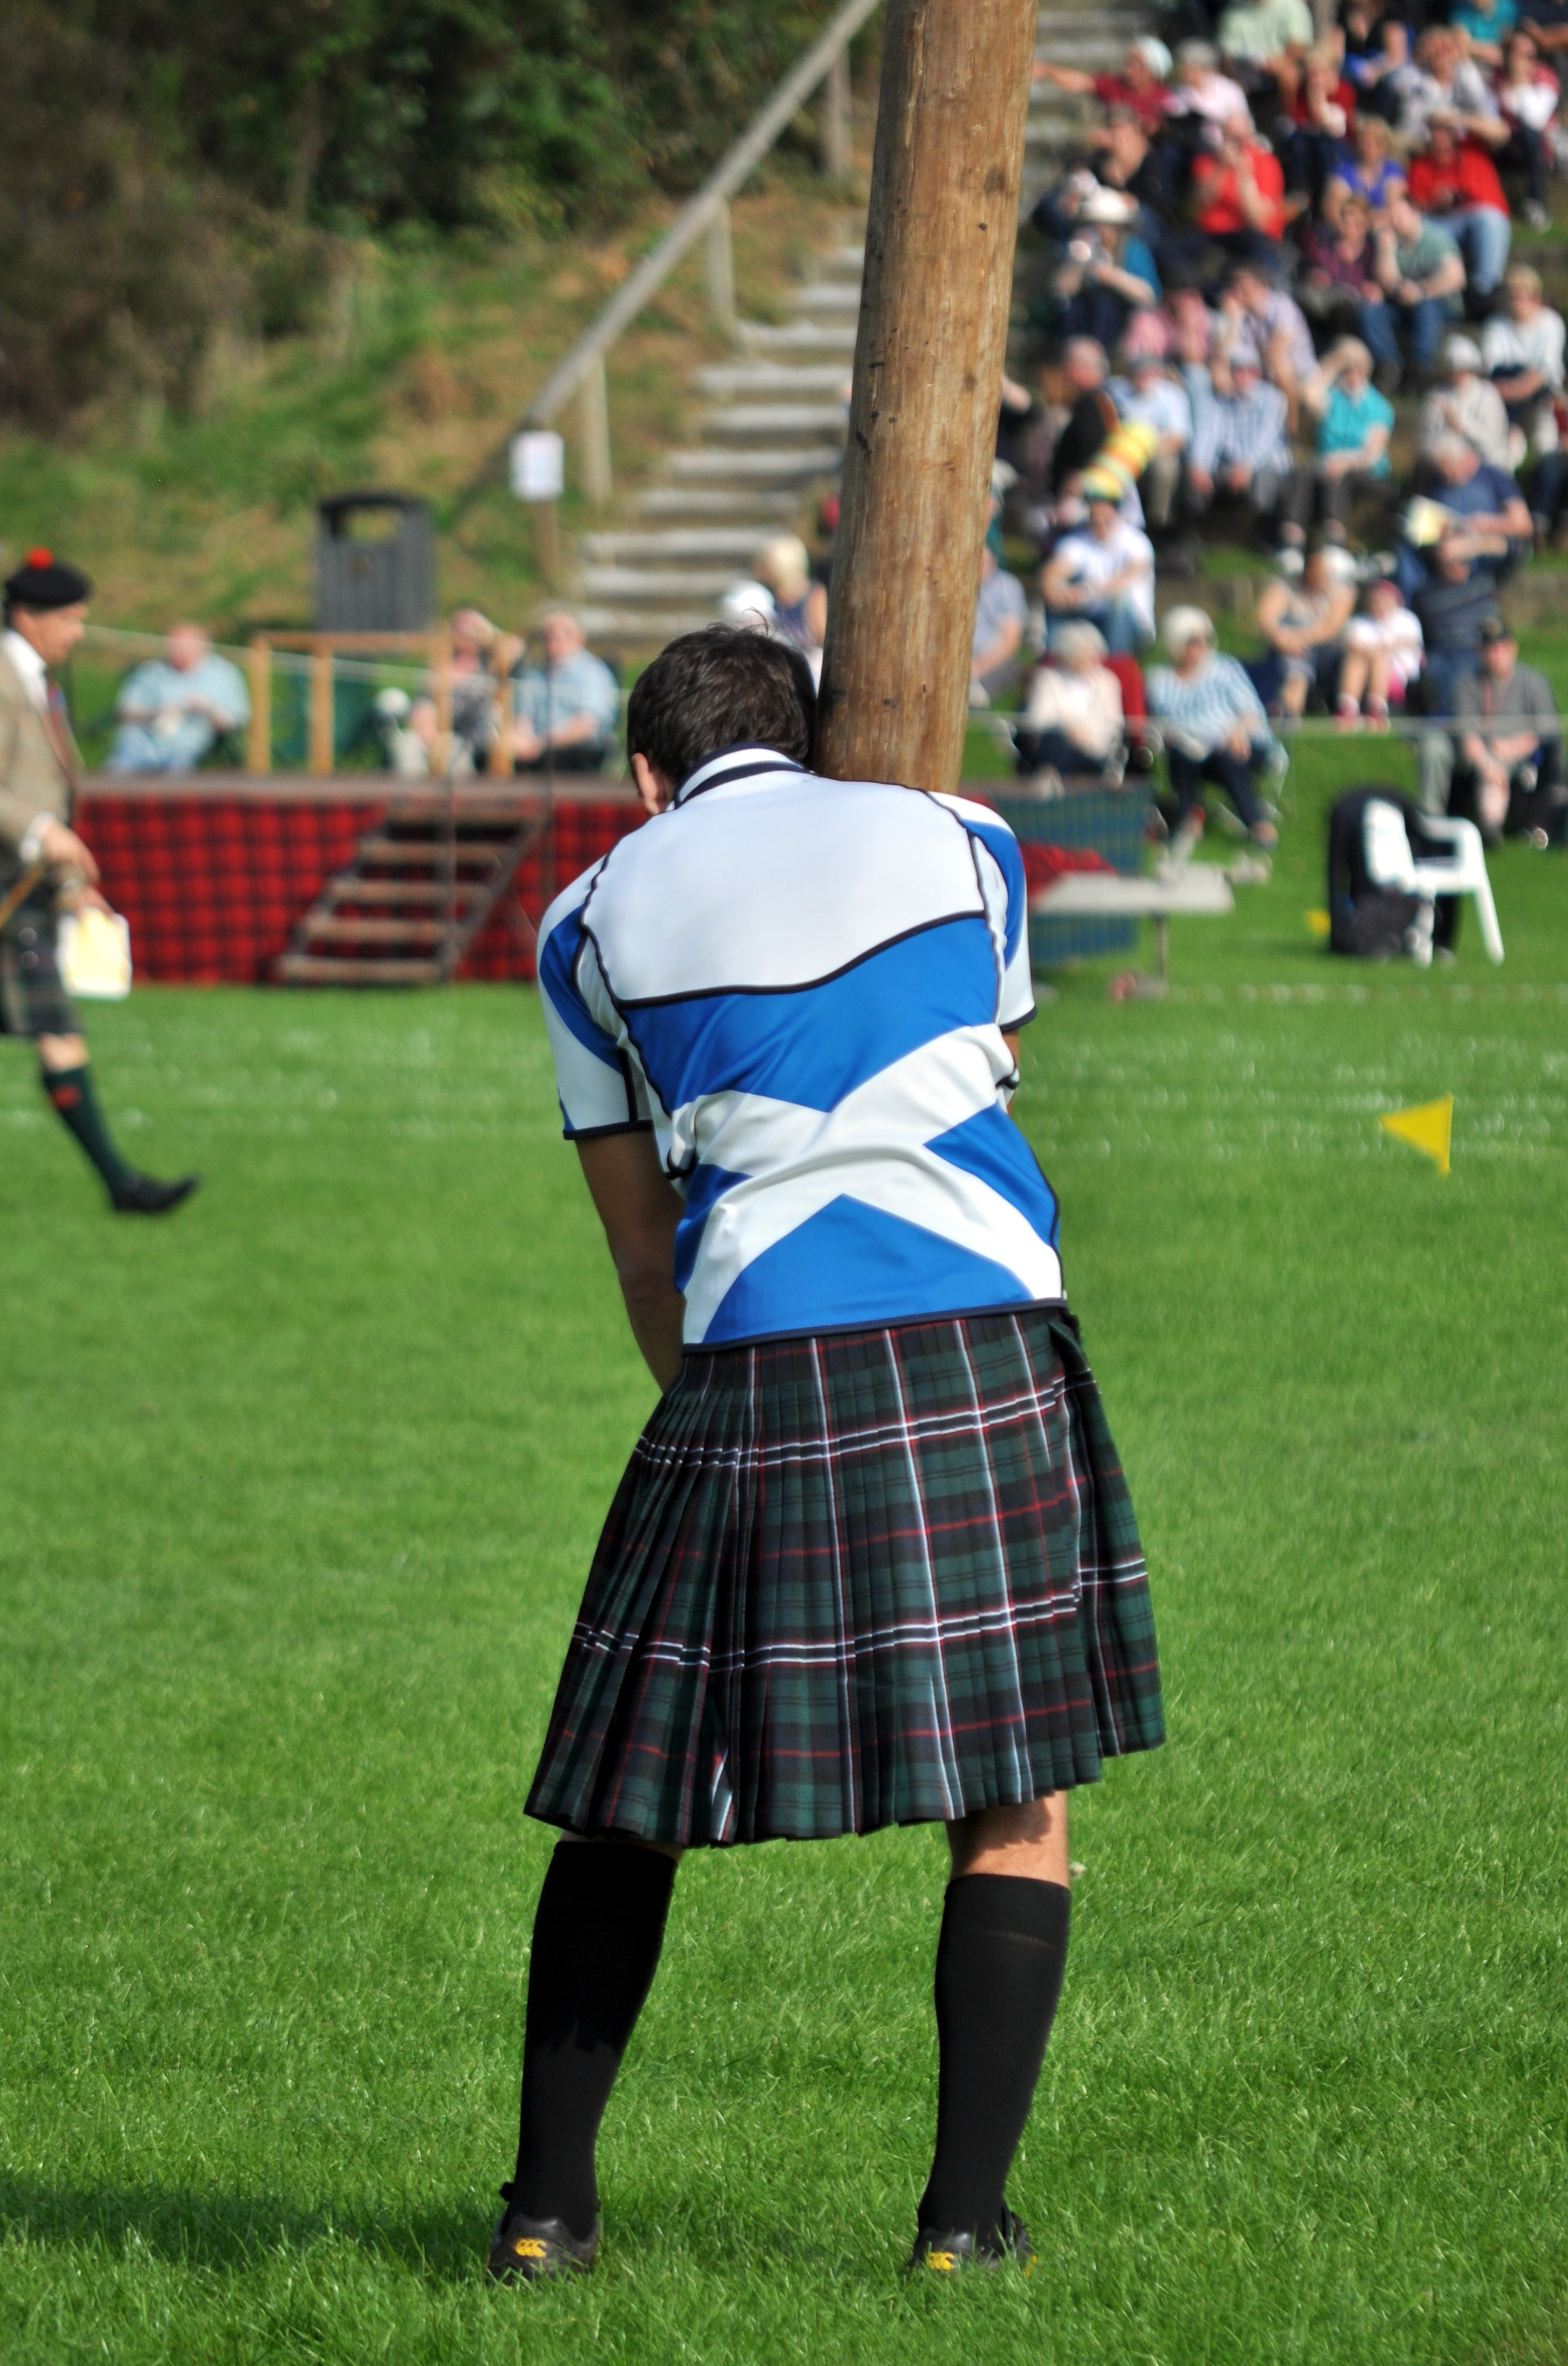 caber toss event at the highland games